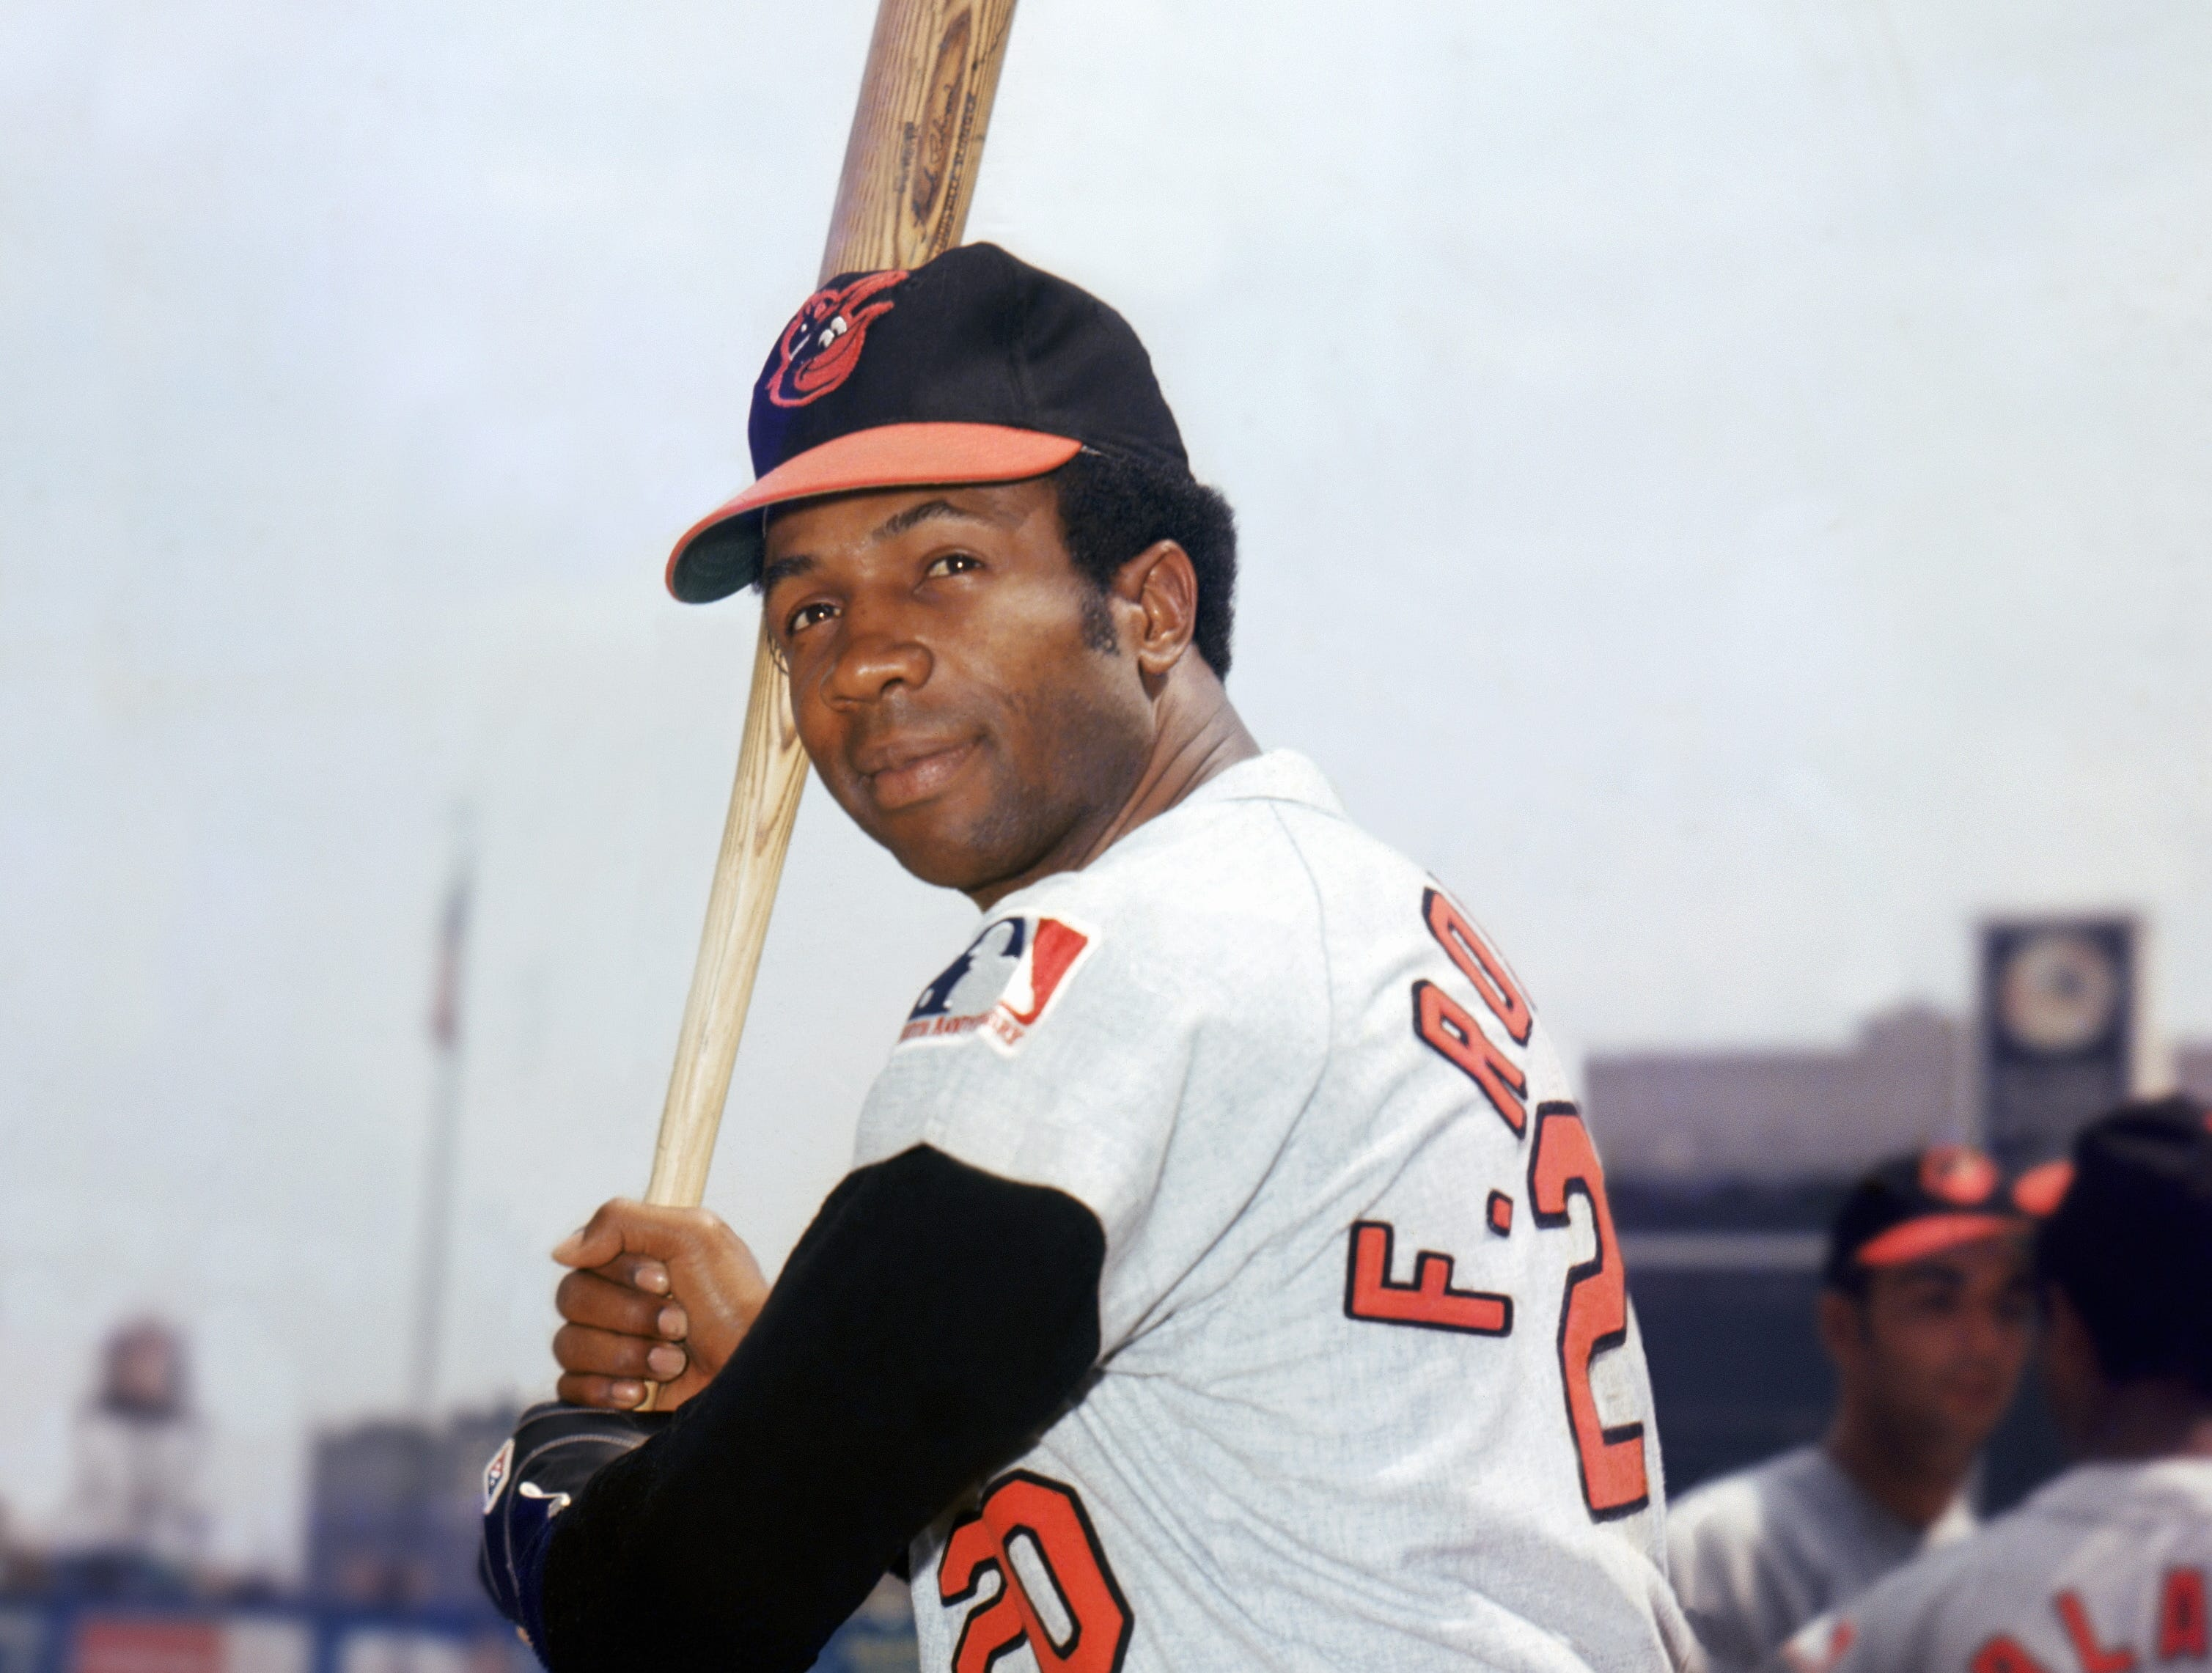 Frank Robinson was elected to the Baseball Hall of Fame with 89.2 percent of the vote in his first year of eligibility in 1982.